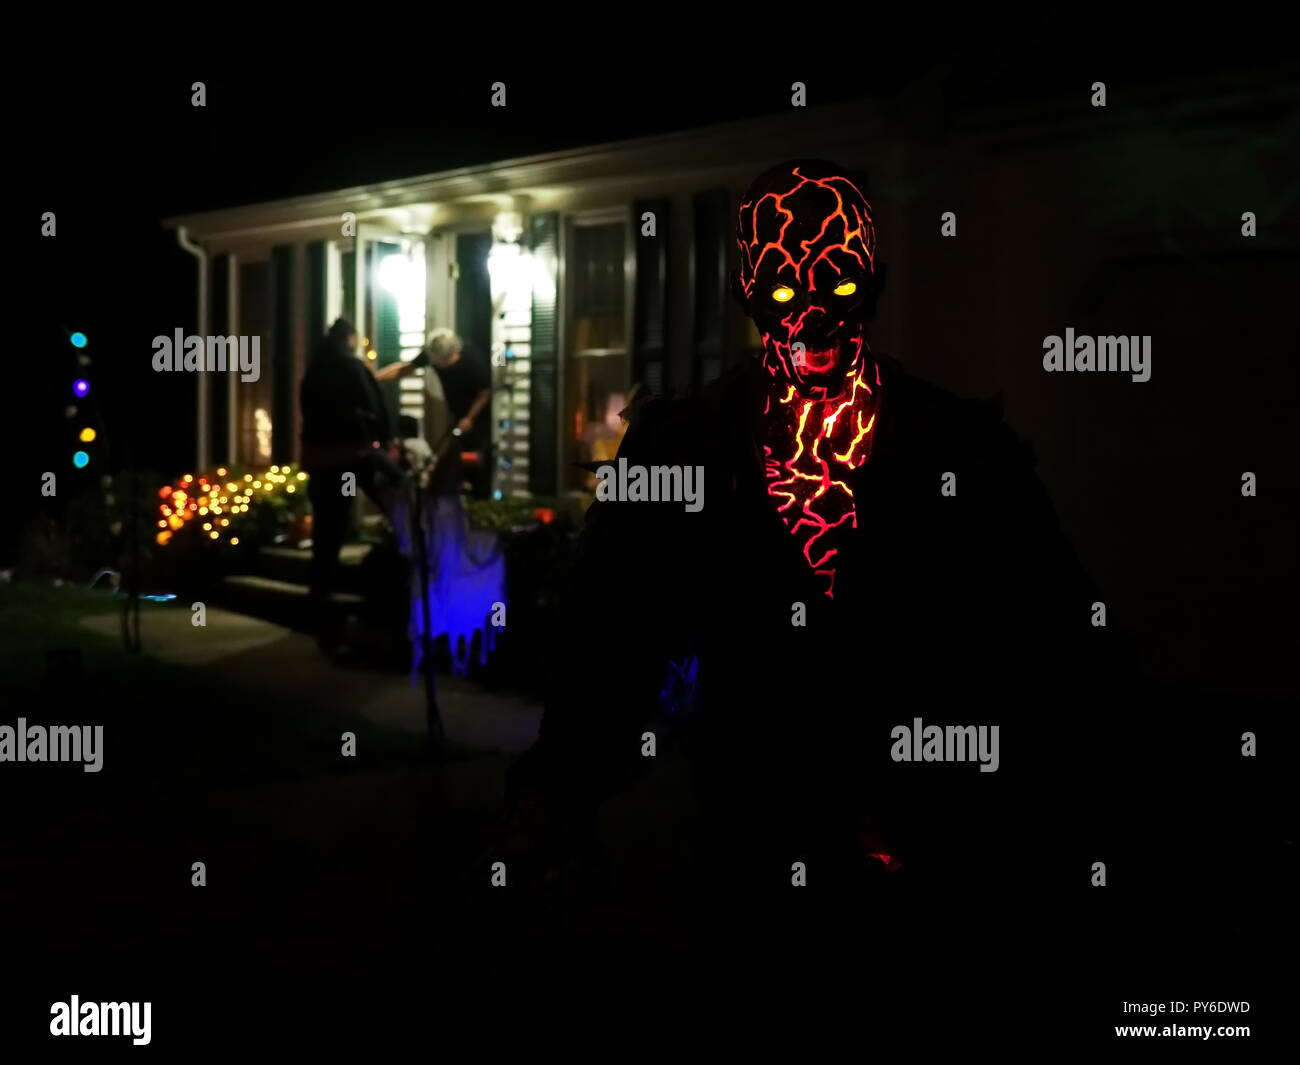 Truly frightening and scary is this Volcano or Lava monster man display at a New England Halloween. - Stock Image